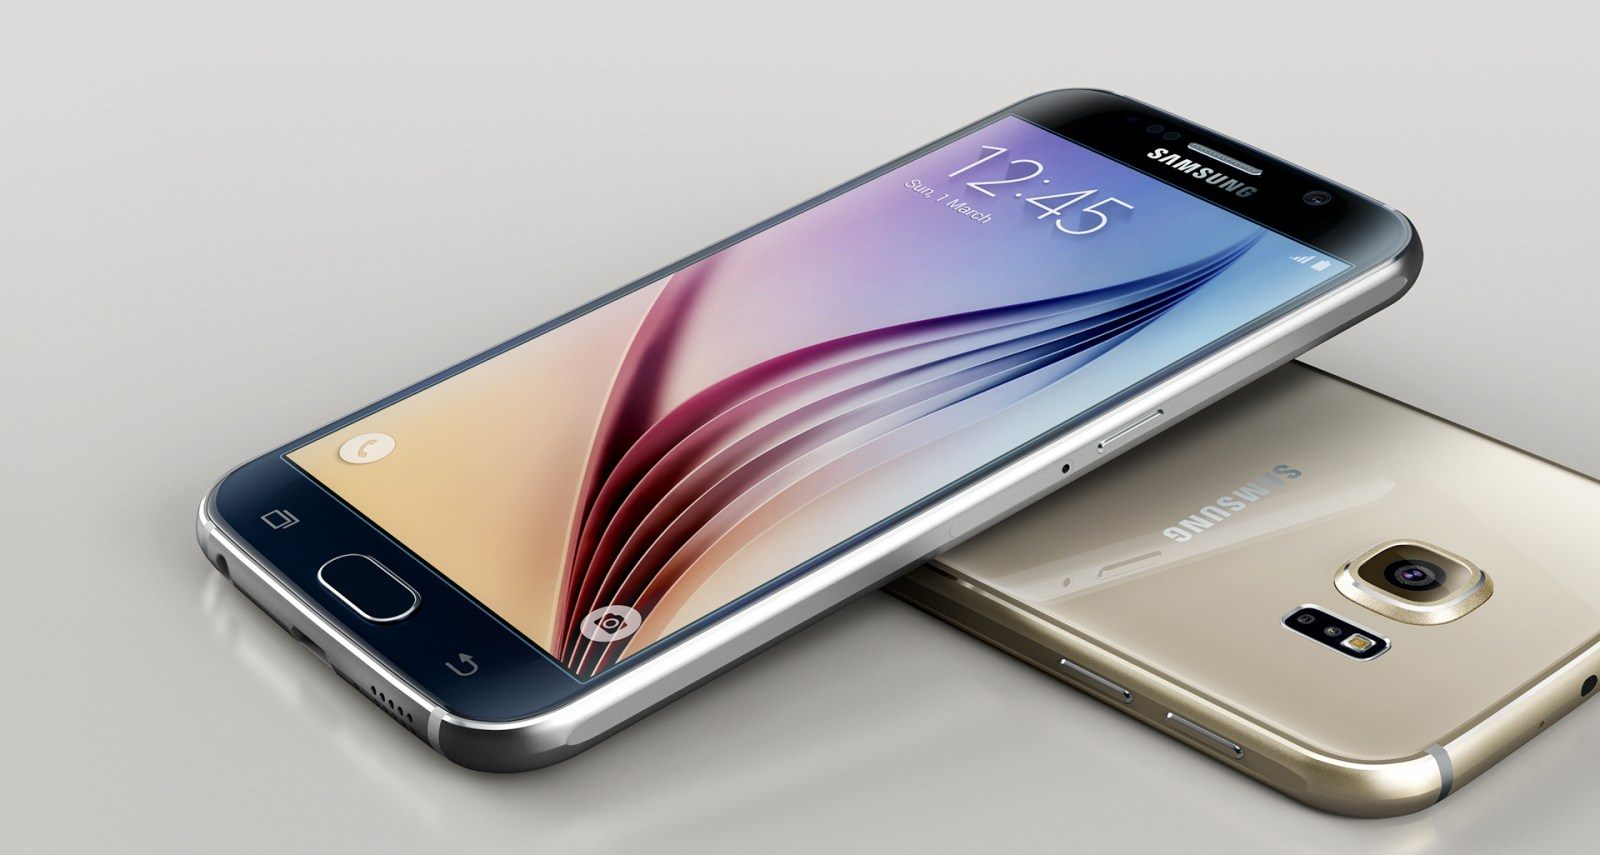 9to5Toys Lunch Break: Samsung Galaxy S6 $430, Fitbit Charge activity tracker $100, more